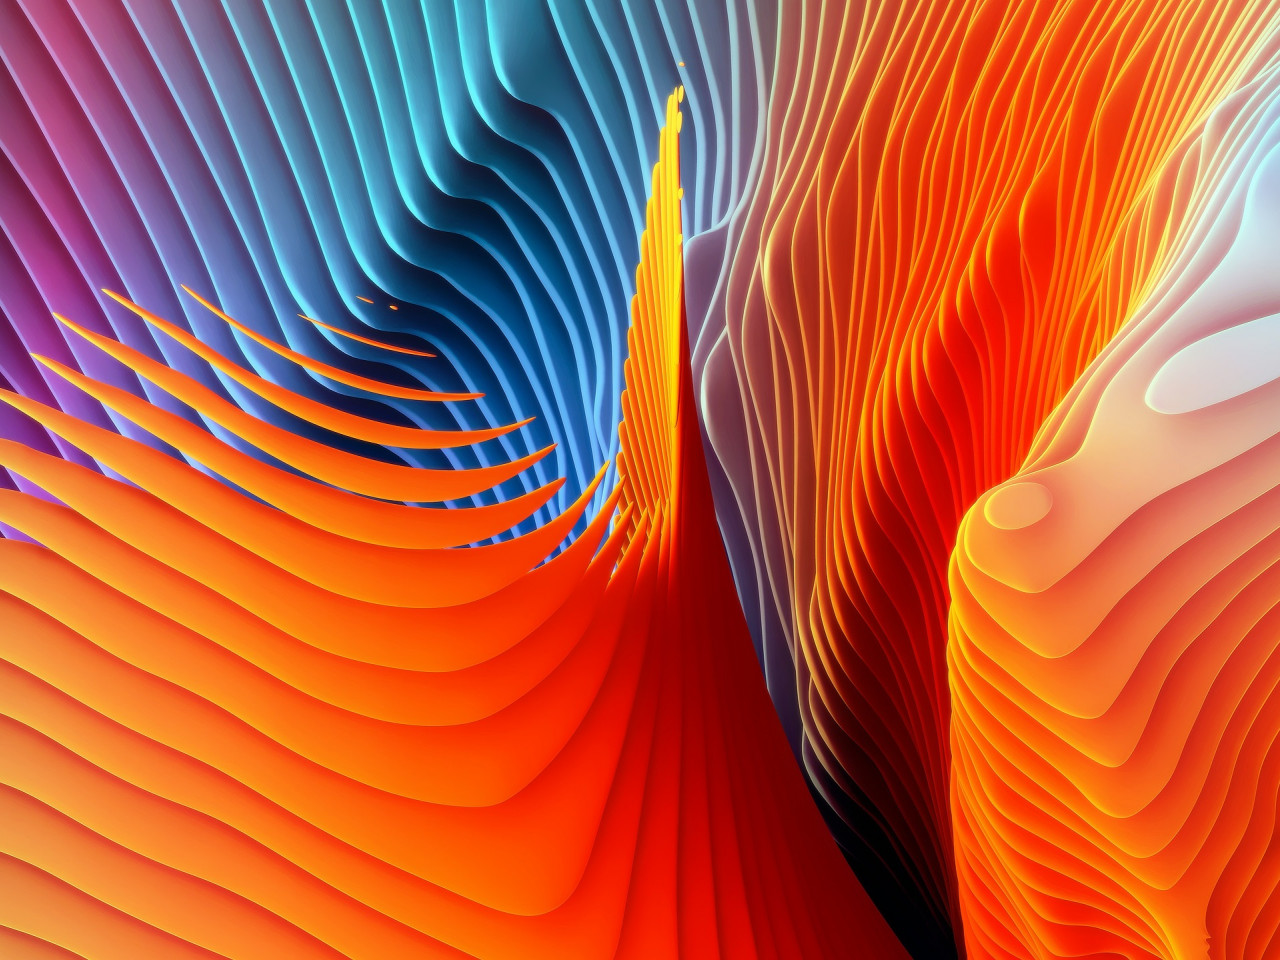 Colorful spirals wallpaper 1280x960